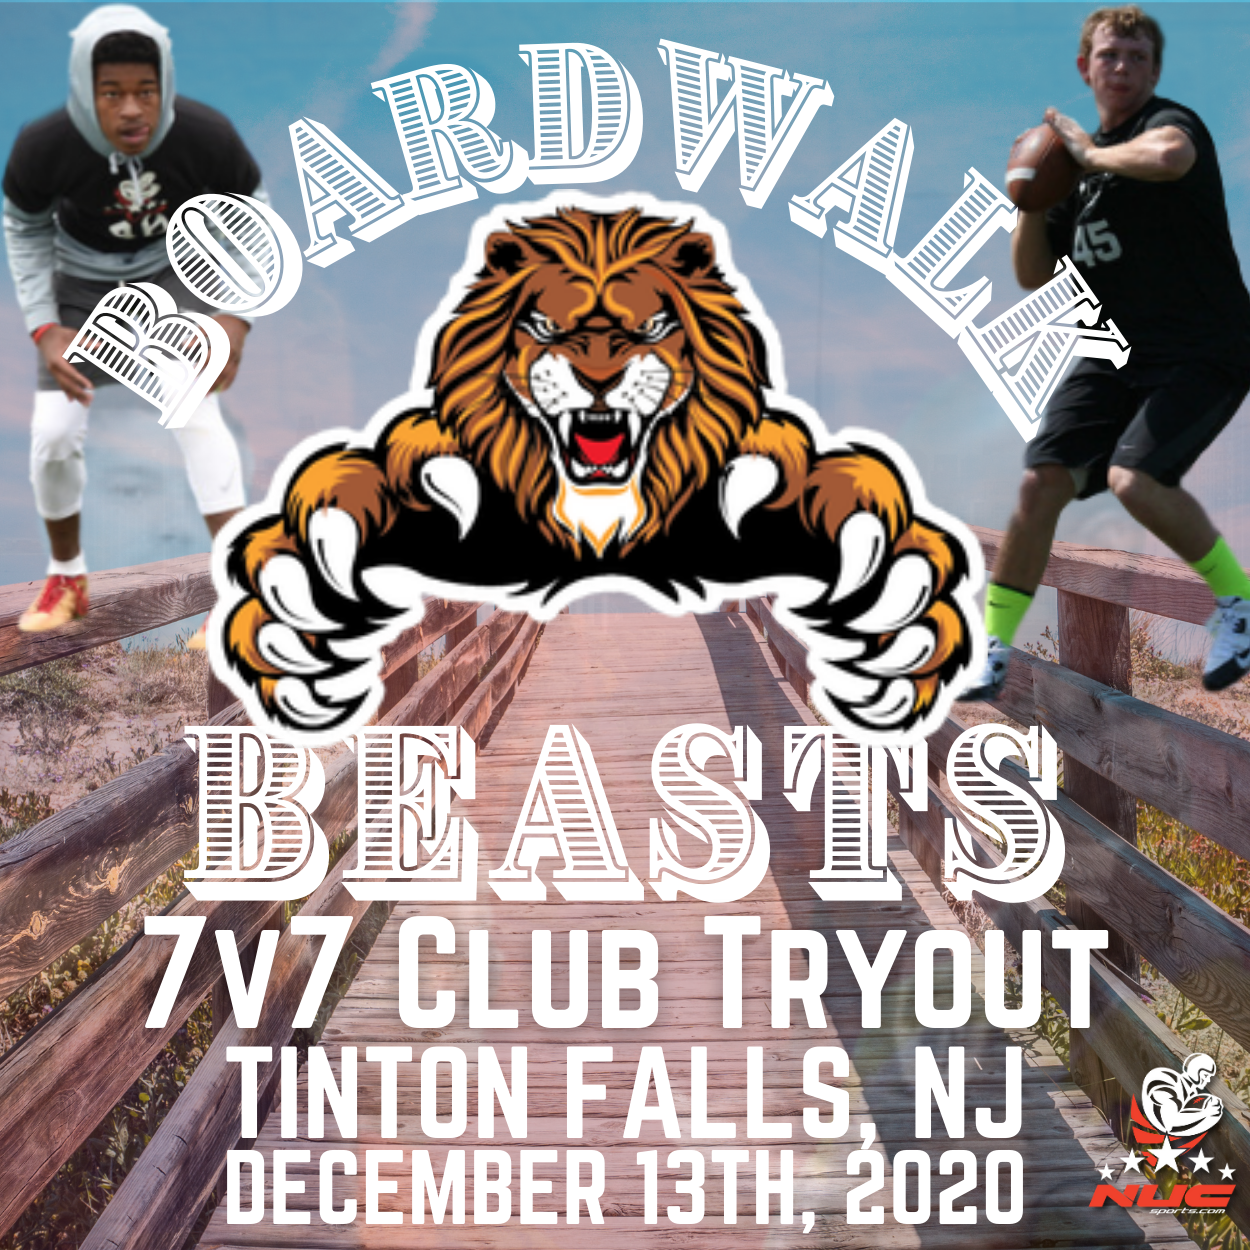 Boardwalk Beasts 7v7 Tryout-SOLD OUT